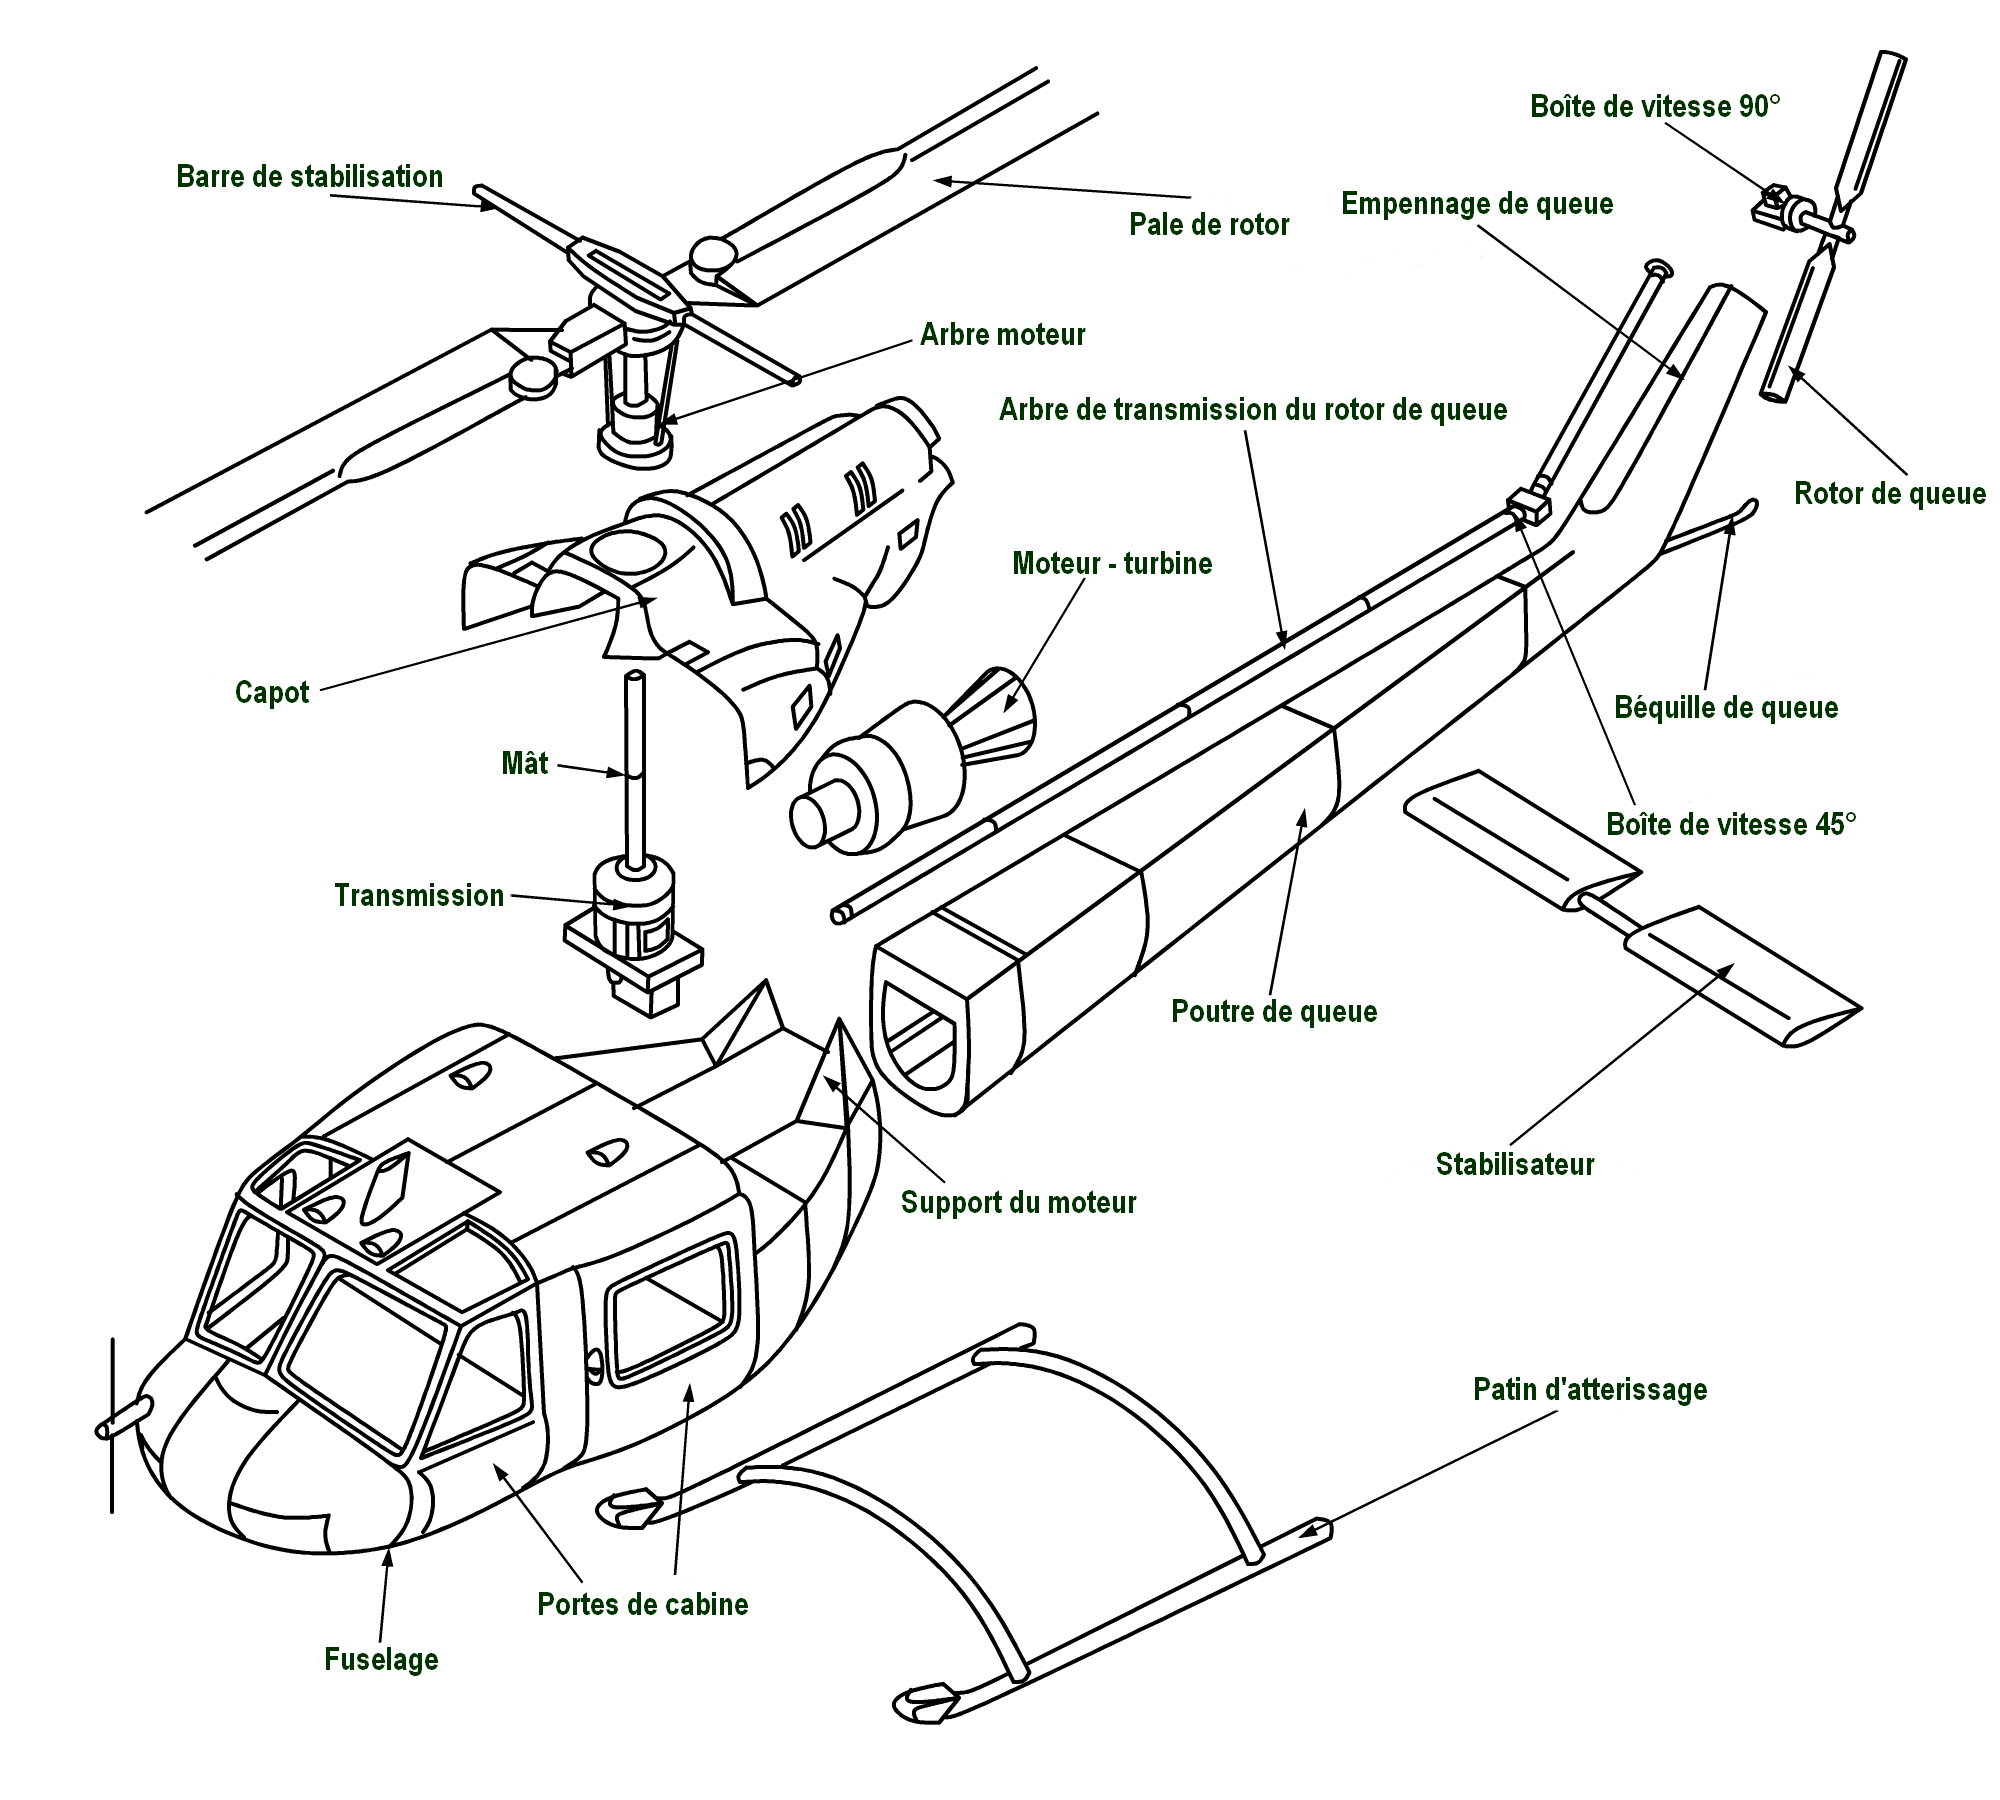 78 F150 Wiring Diagram further Husqvarna 460 200602 Chainsaw Parts C 114486 114487 114602 besides Routed Sytems Design additionally How To Replace Timing Belt On Vauxhallopel Insignia 1 6 in addition Hobart Mixer Wiring Diagram. on schematics h